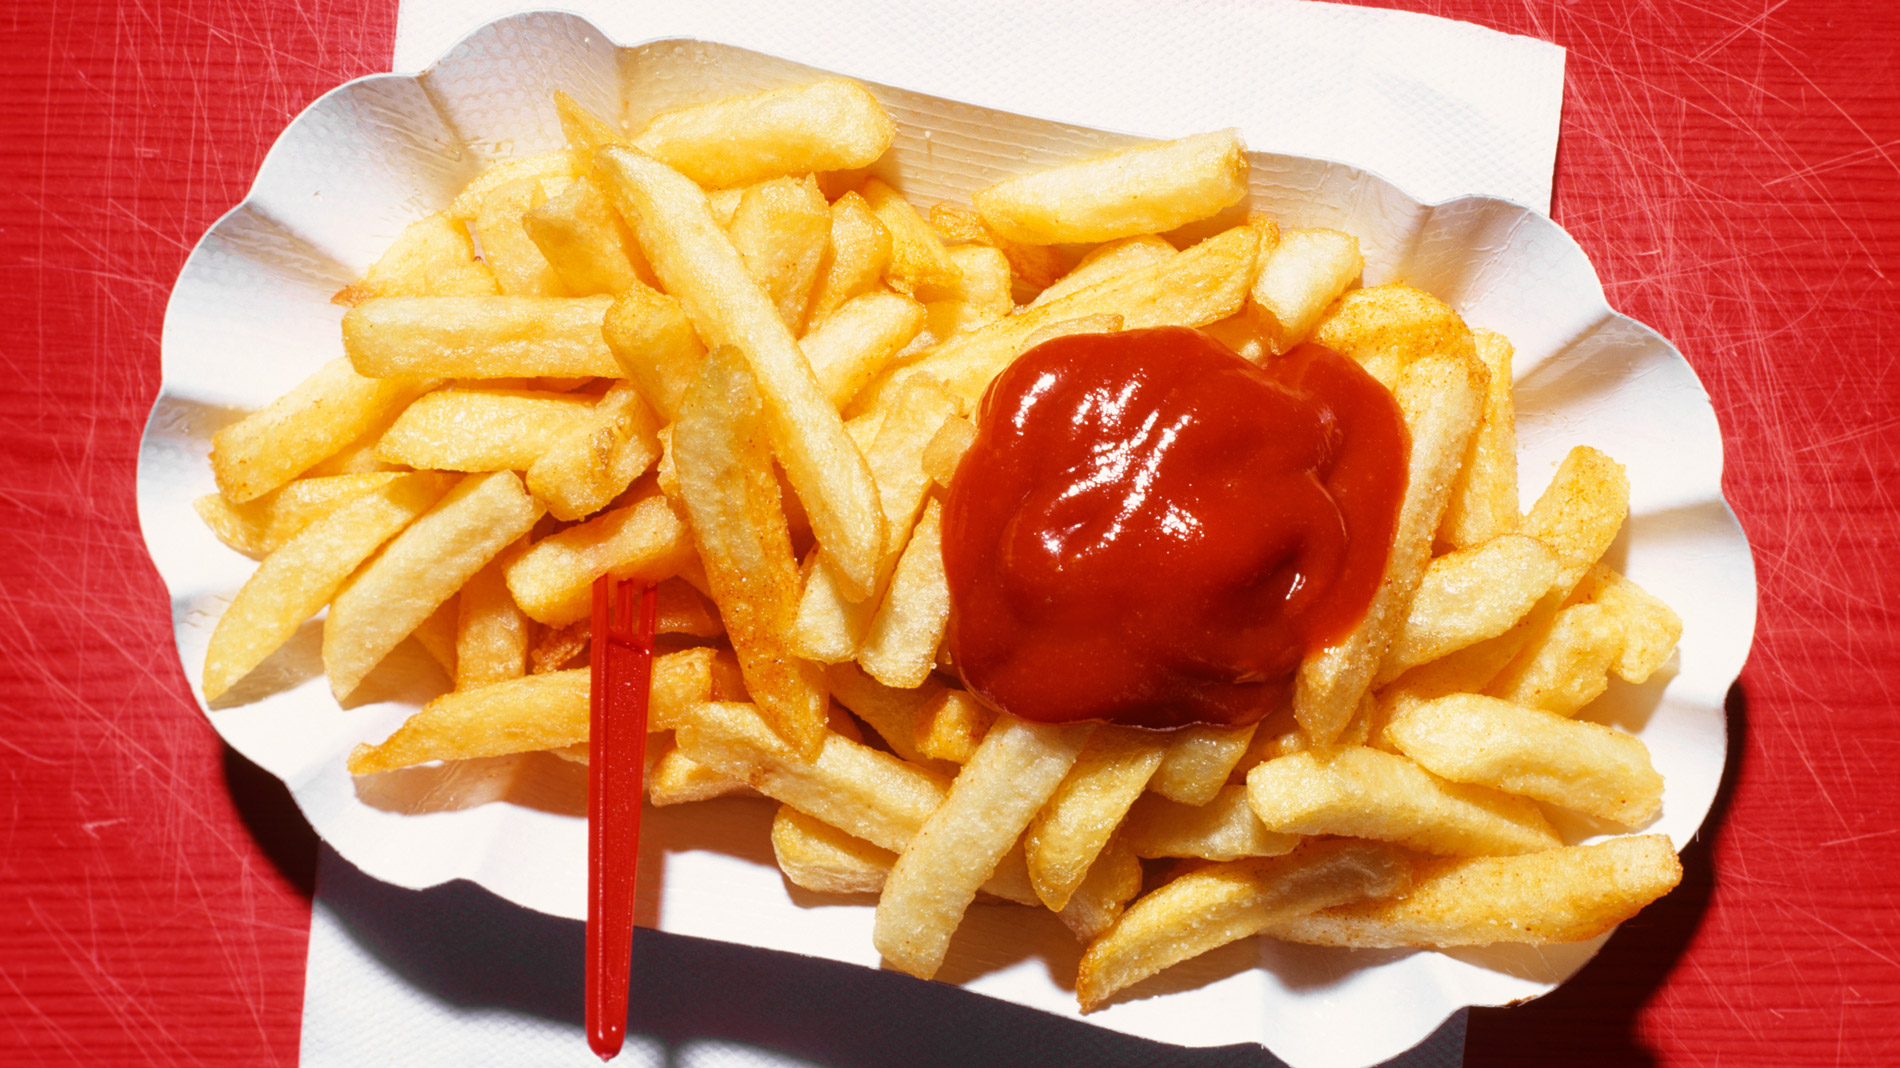 The Best Way to Get Ketchup Out of the Bottle, According to Science